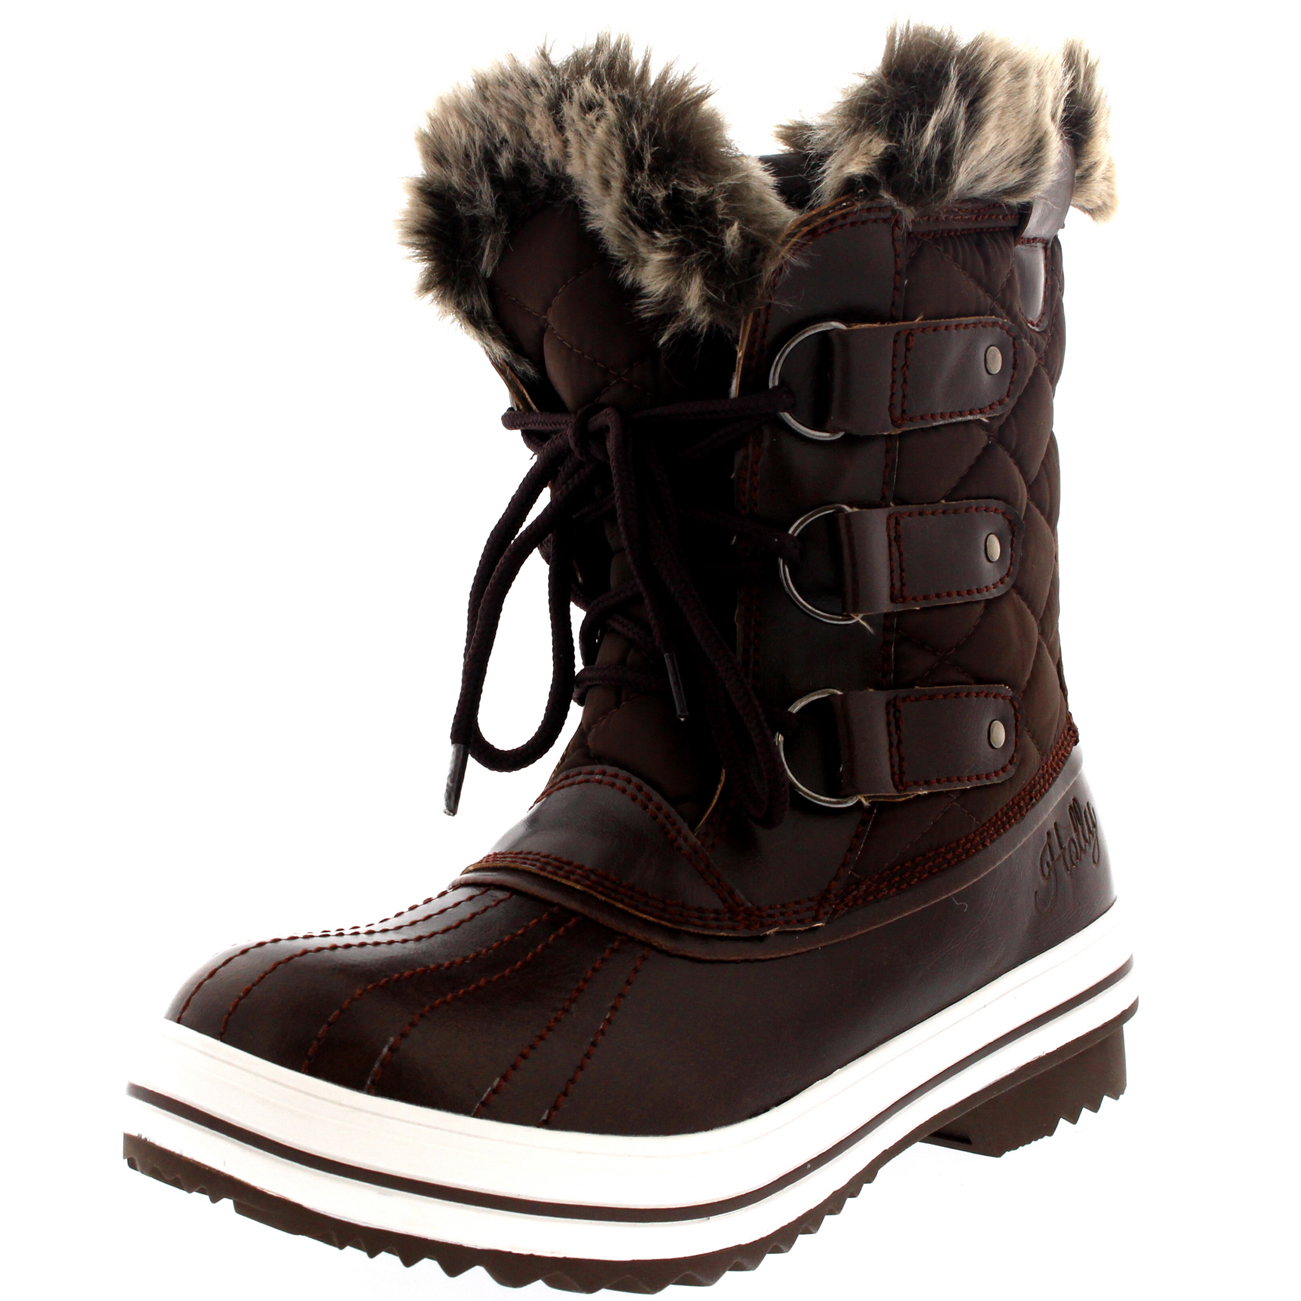 Womens Snow Boot Nylon Short Winter Snow Fur Rain Warm Waterproof ...